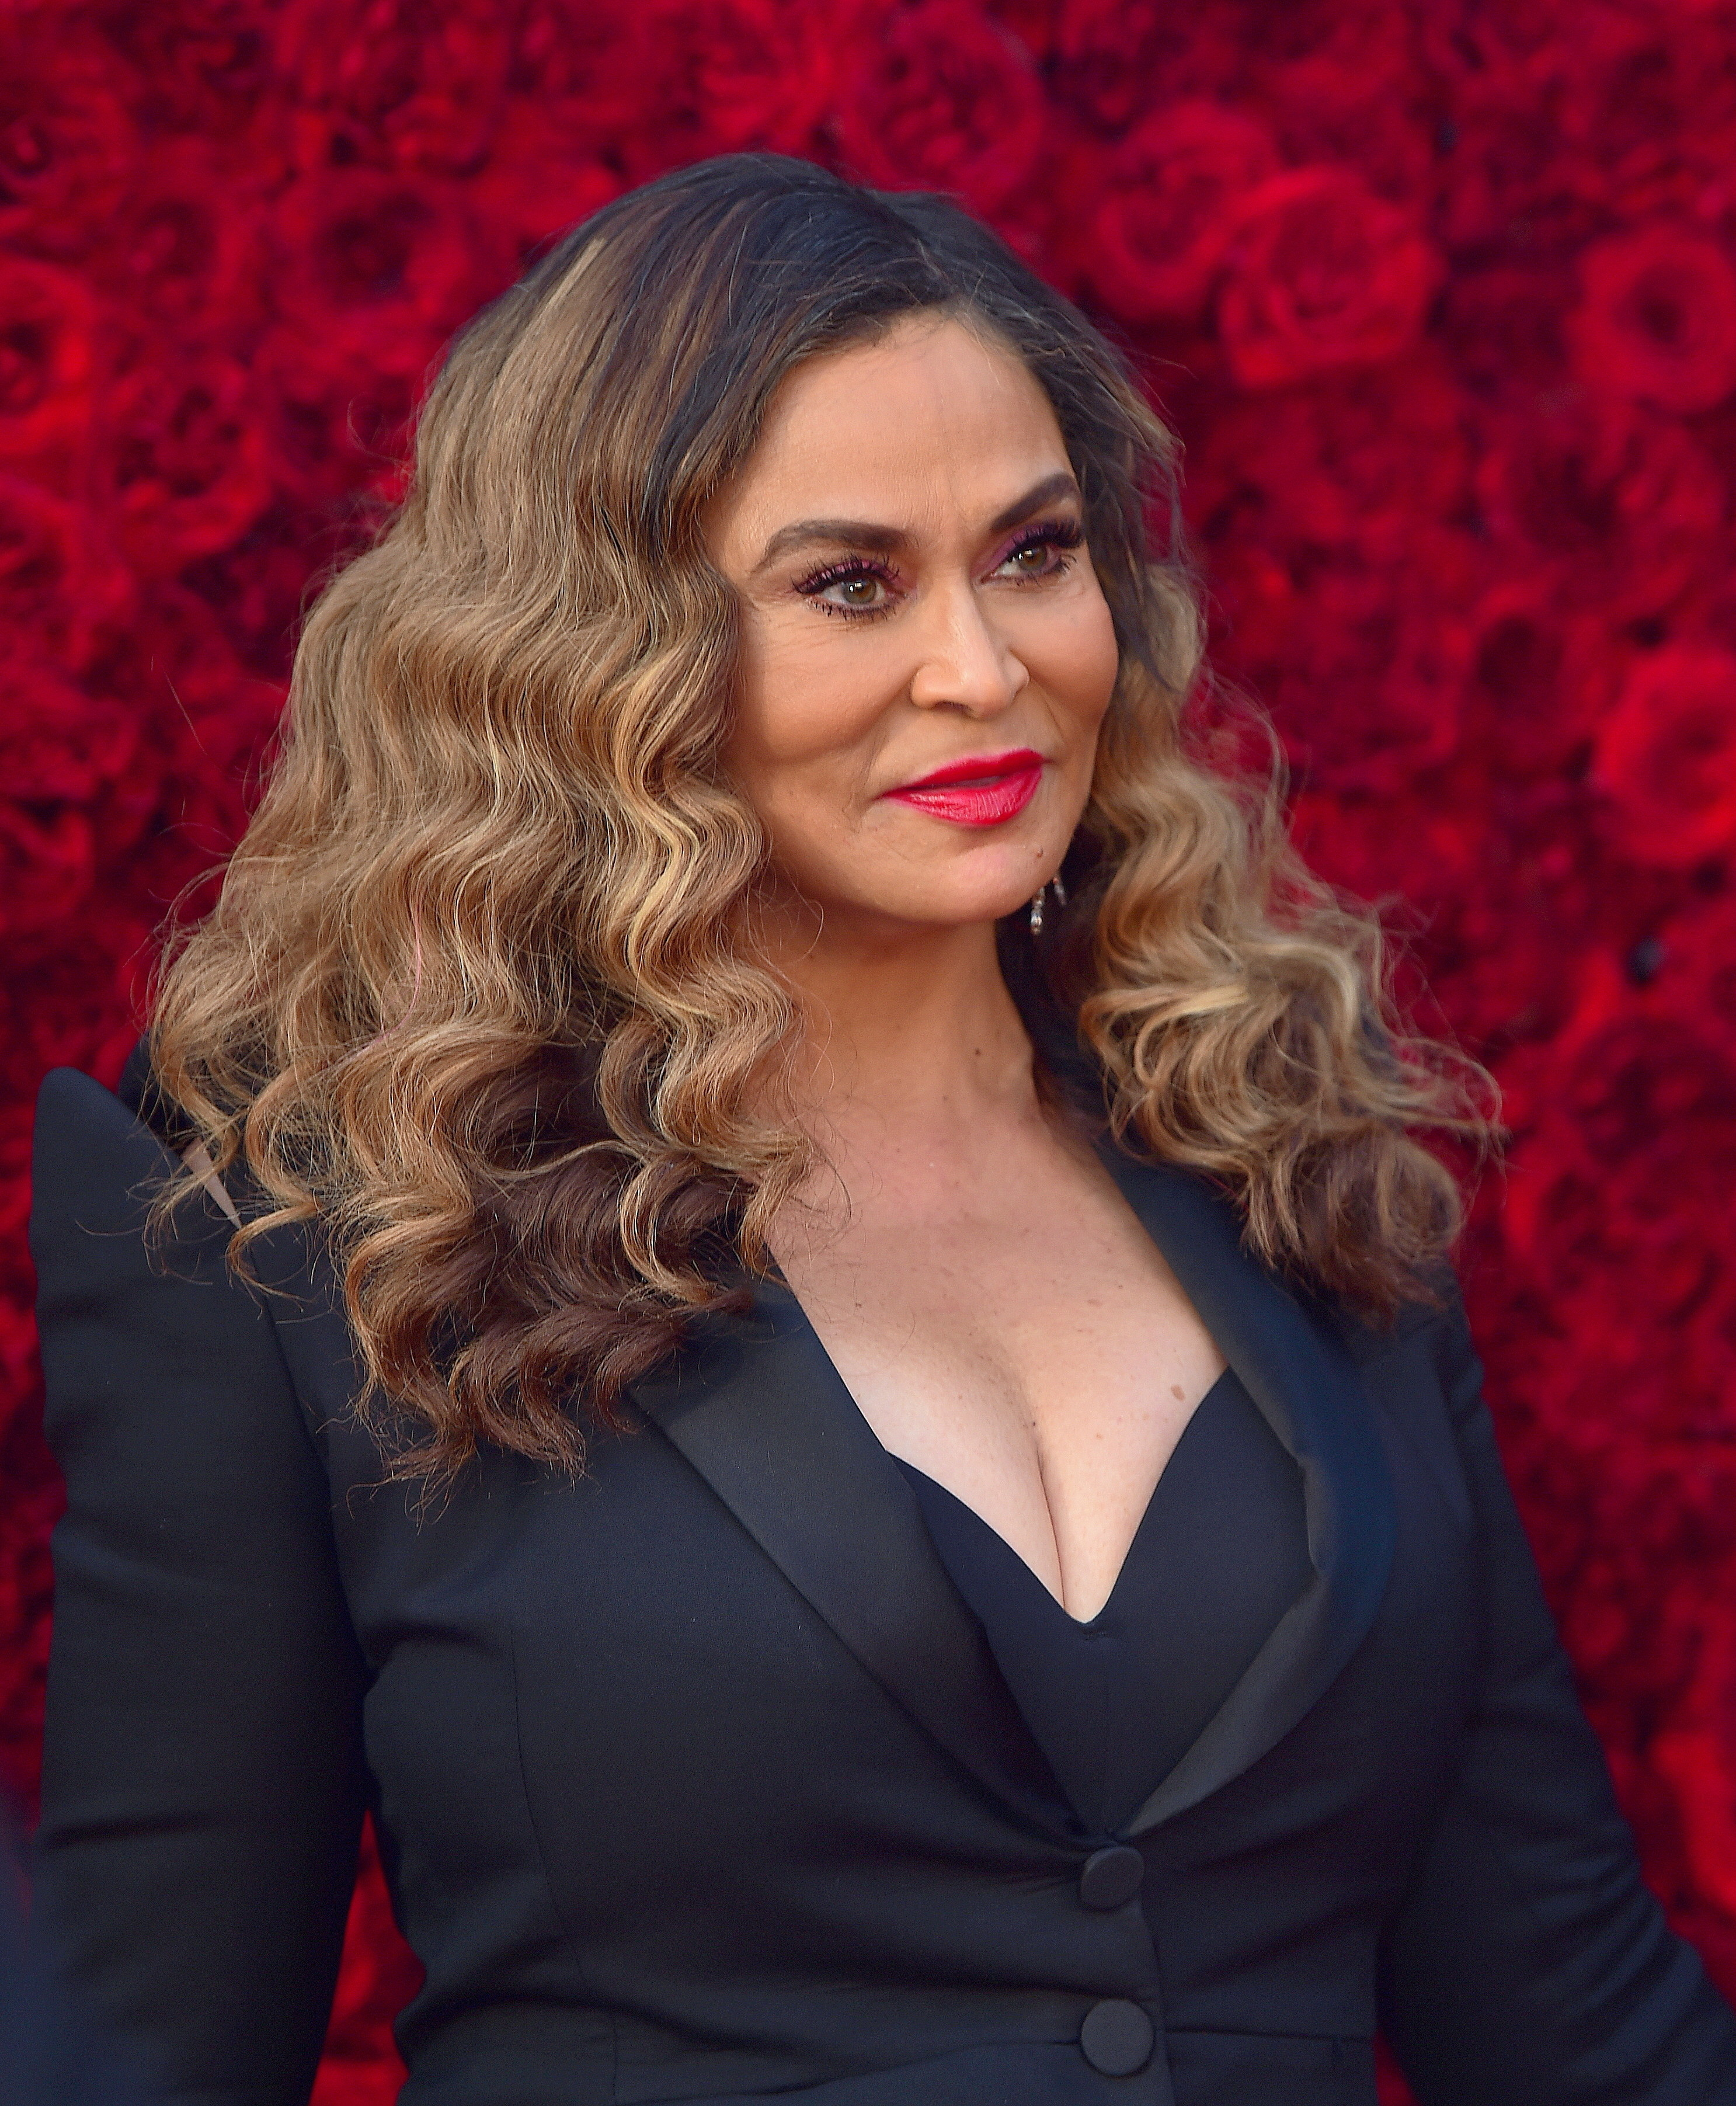 Tina Knowles at event wearing a black suit